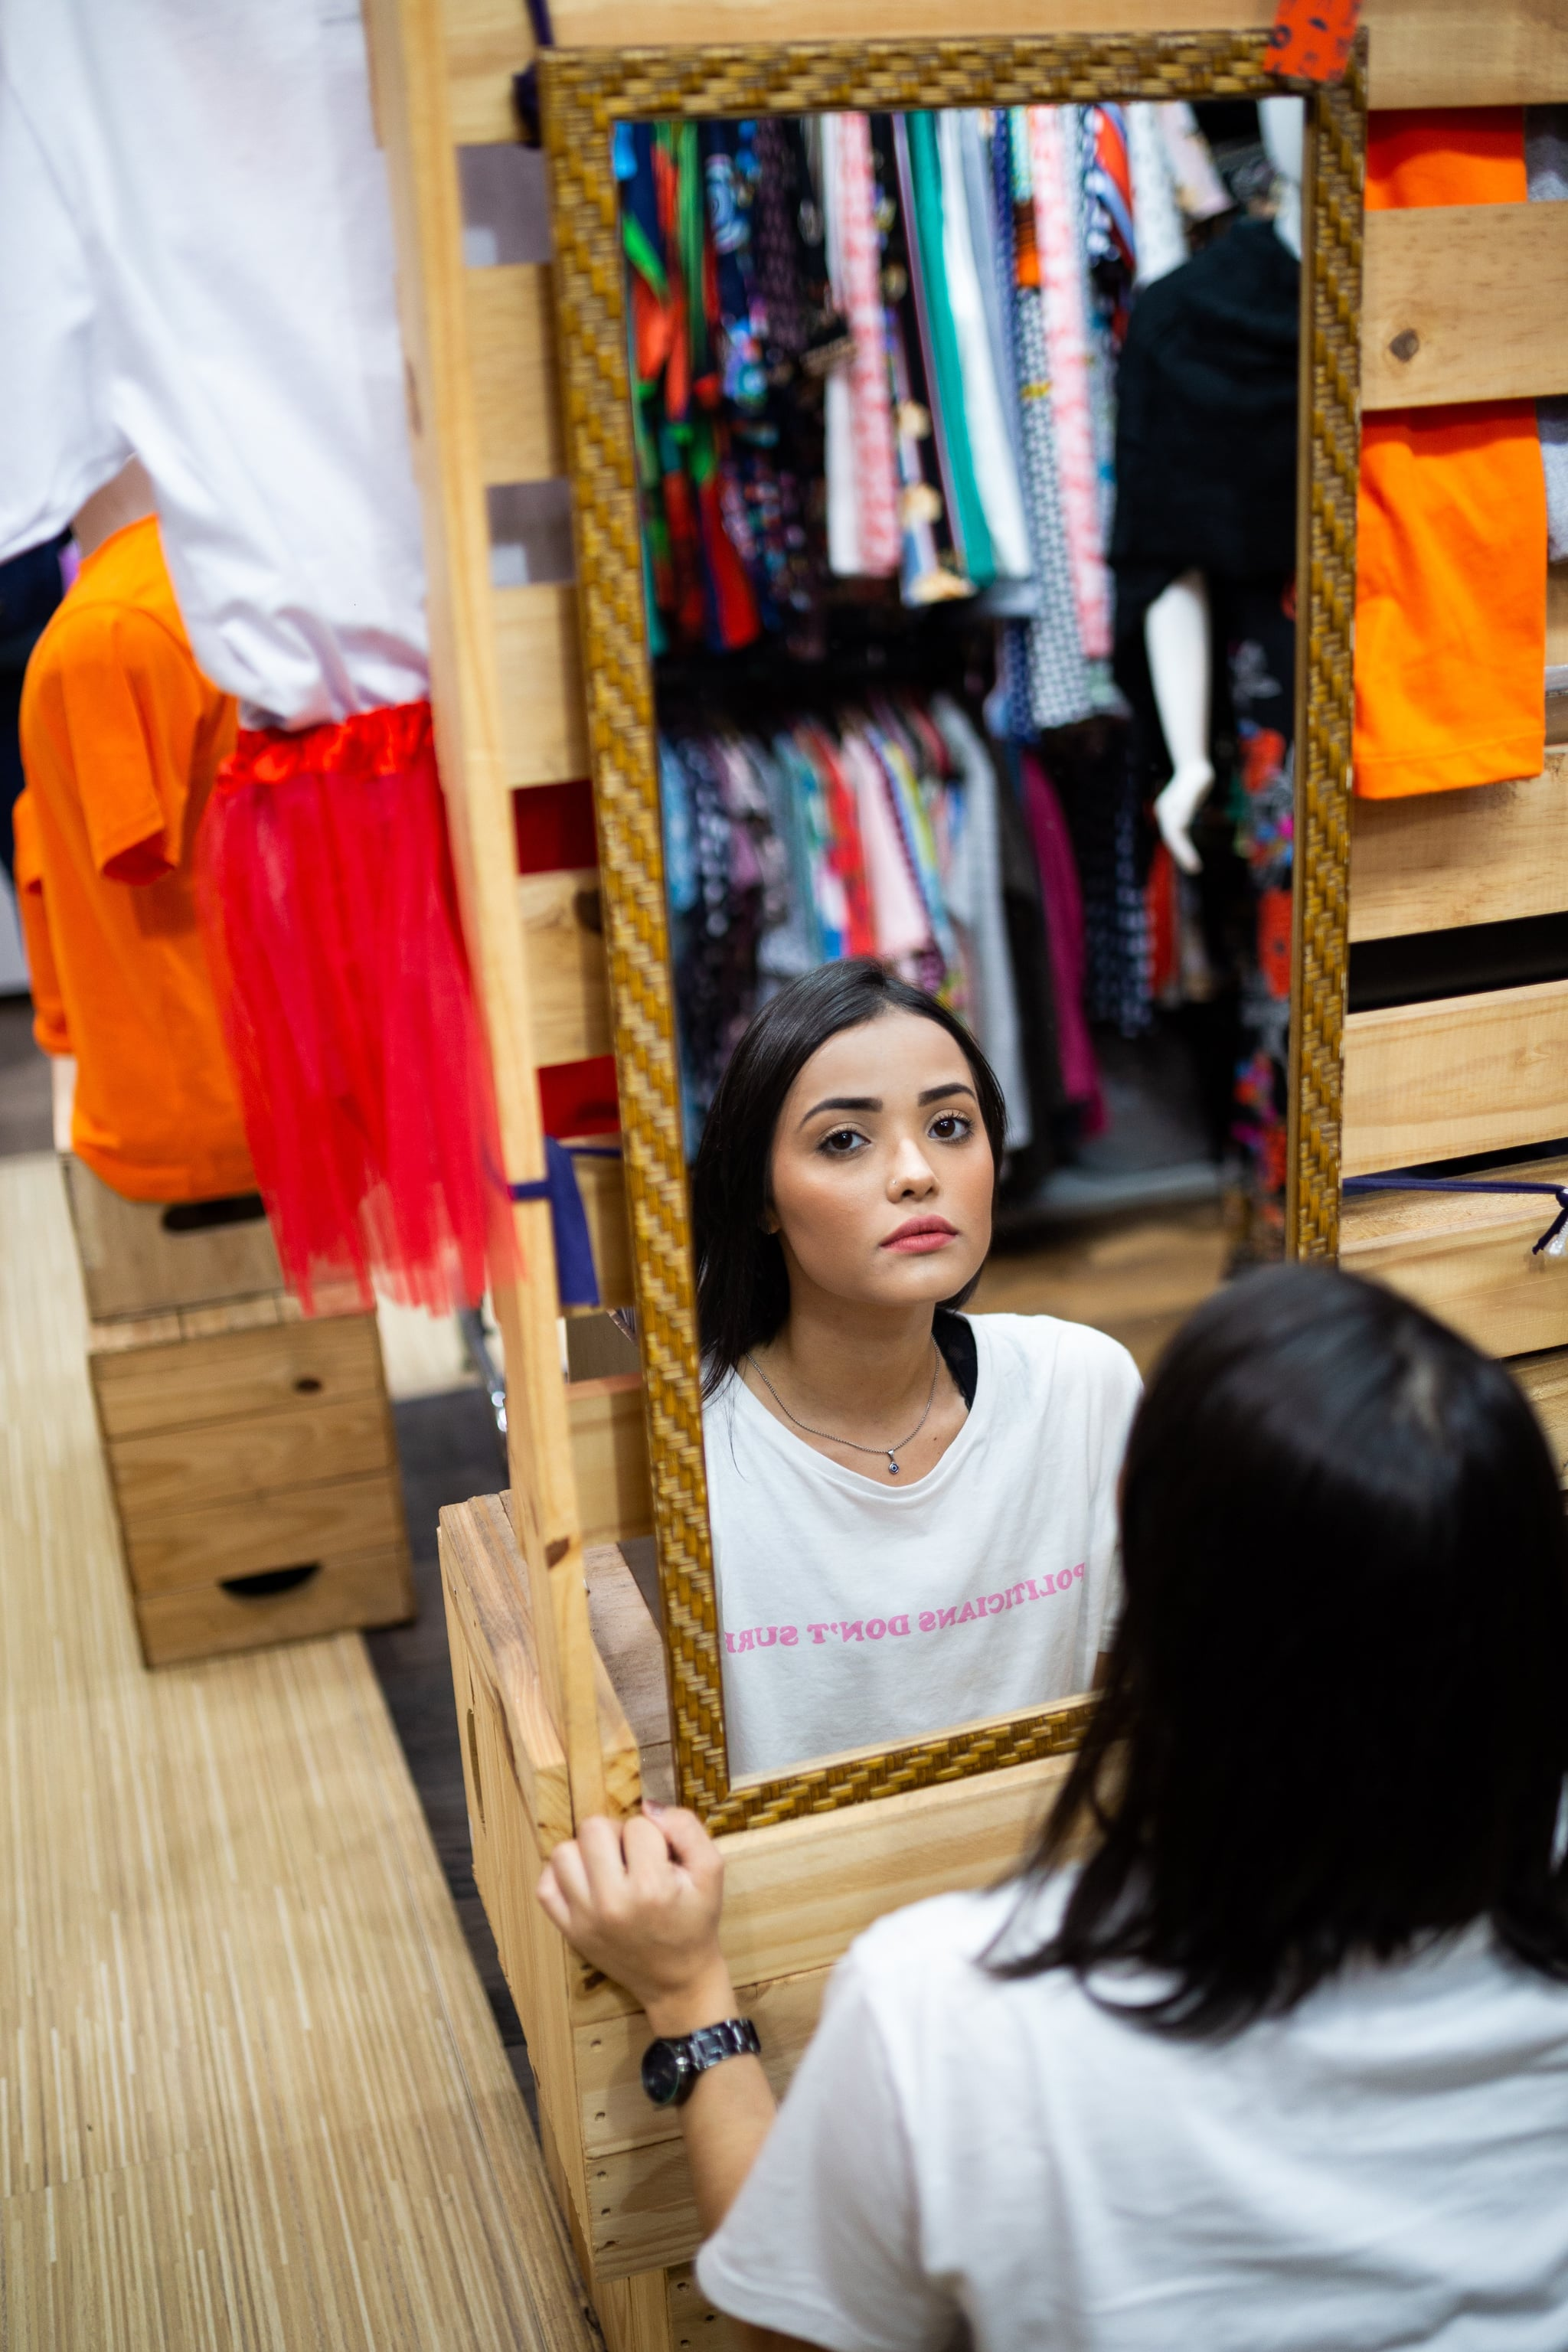 tmp_I4k6wu_874c0bbacce2307b_photo-of-woman-in-front-of-mirror-2531119.jpg